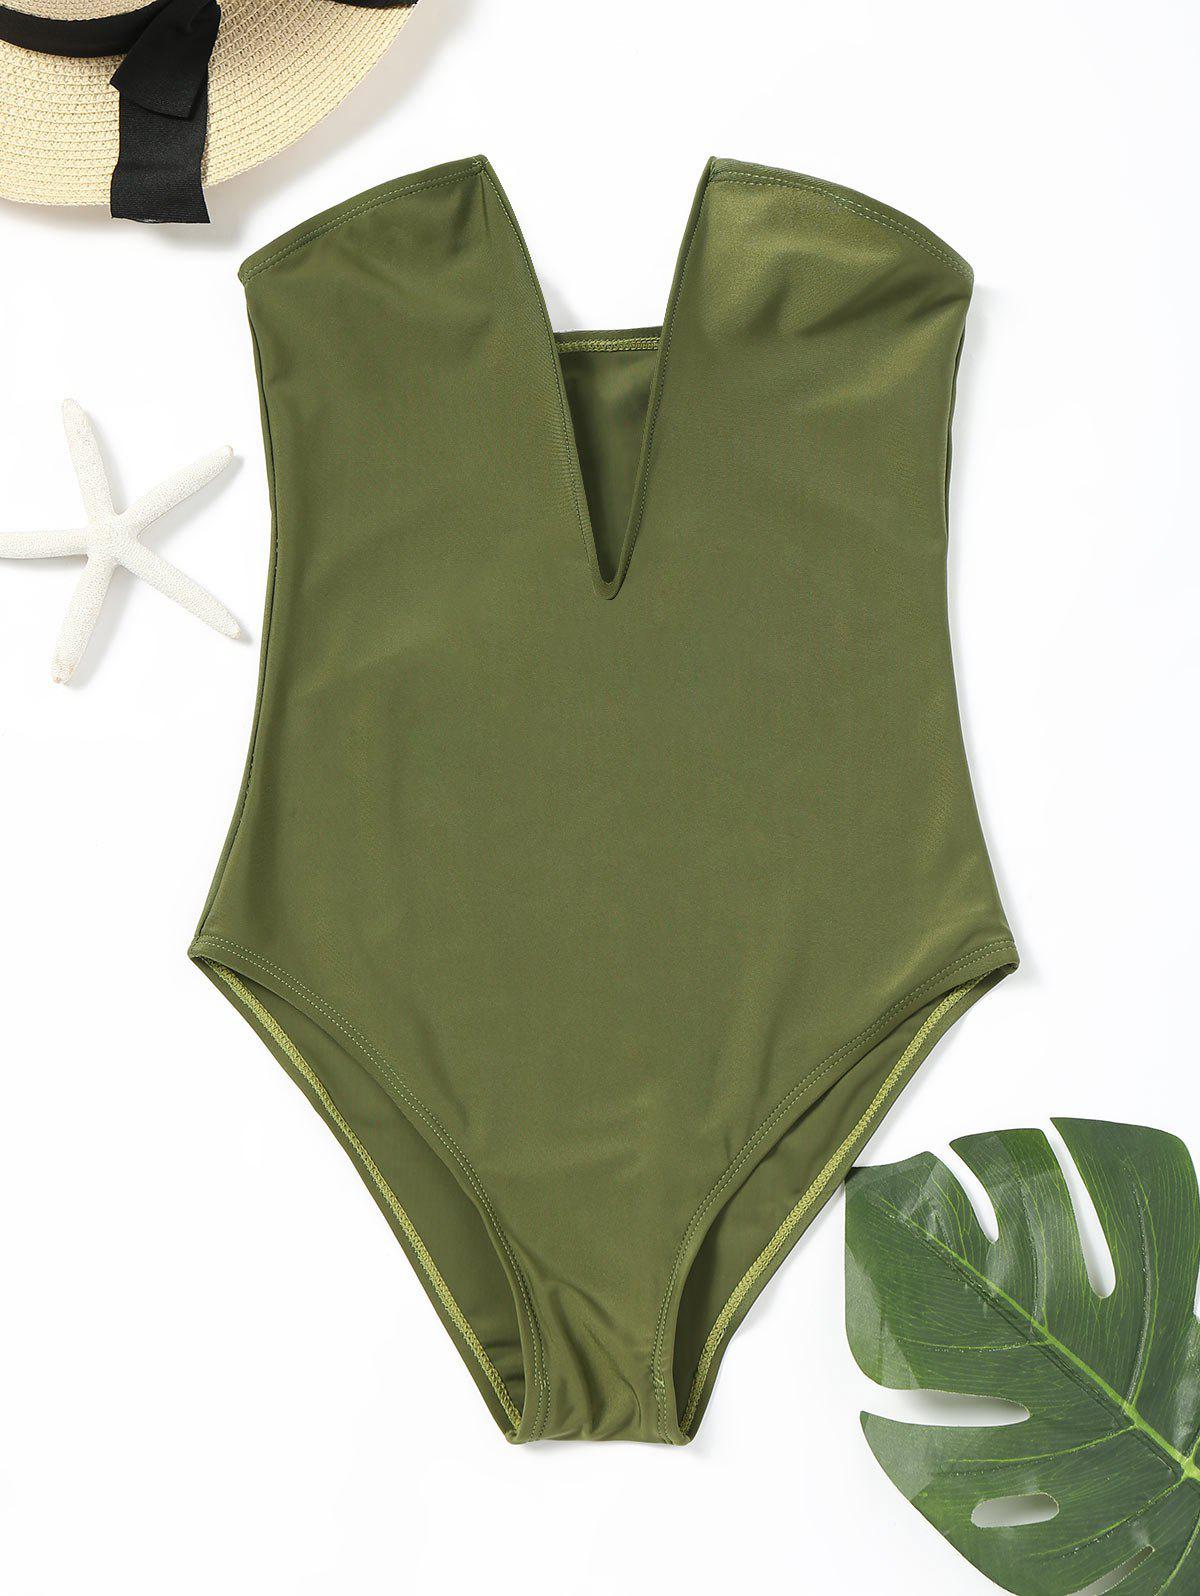 Plunge High Leg Bandeau One Piece Bathing Suit nsa professional one piece triangle competition training swimsuit waterproof chlorine resistant women s swimwear bathing suit